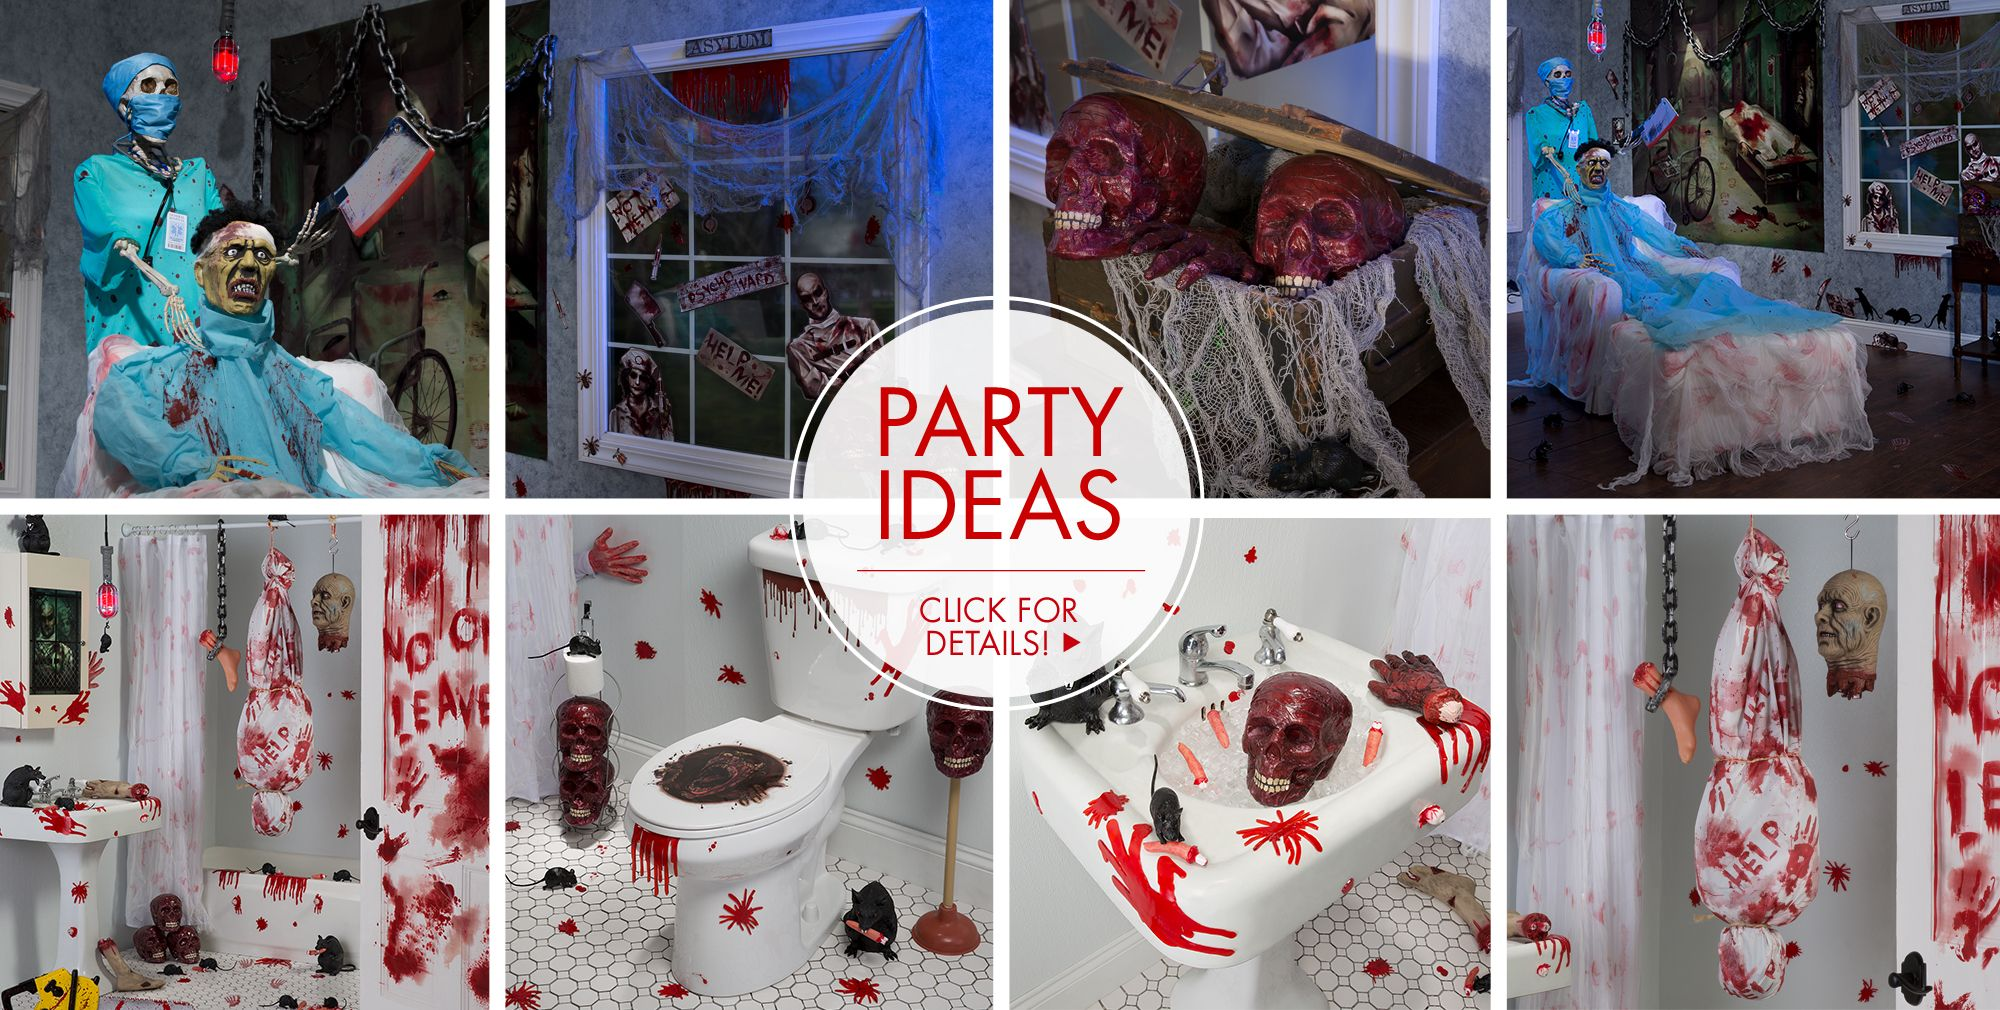 asylum halloween decorations party ideas - Halloween Decorations For A Party